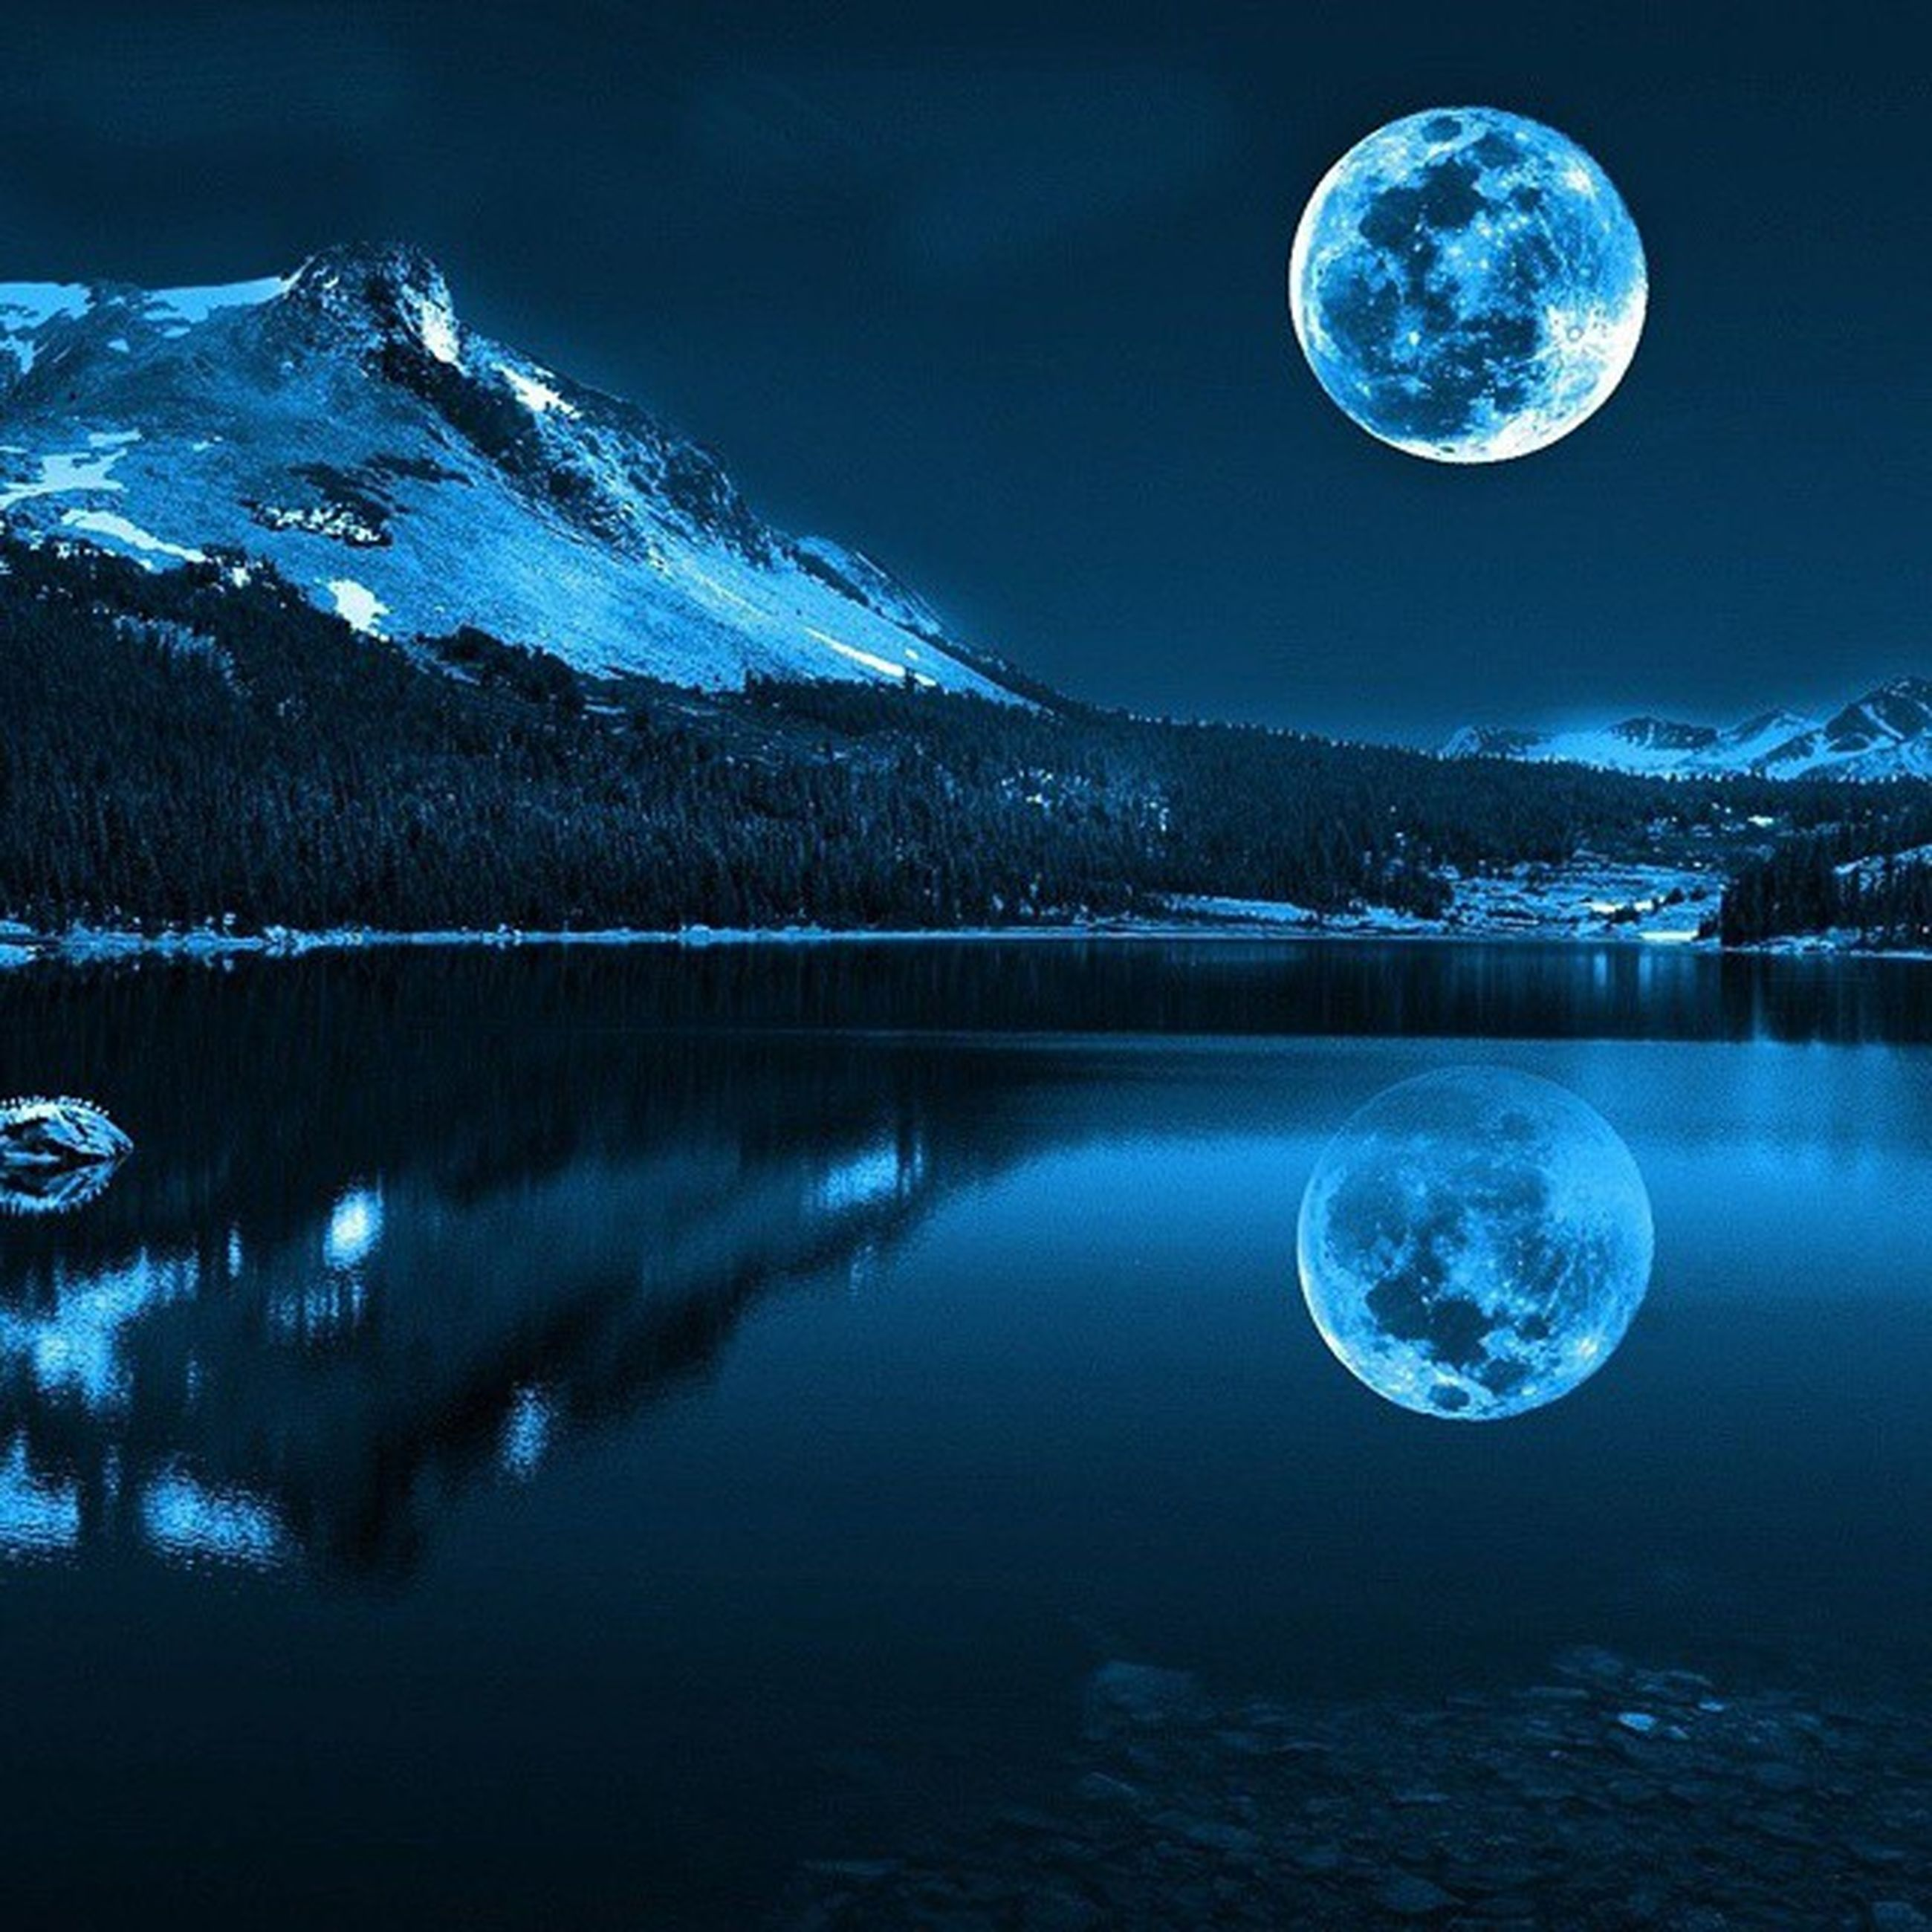 night, astronomy, moon, scenics, beauty in nature, water, tranquil scene, tranquility, blue, planetary moon, full moon, reflection, sky, illuminated, star - space, nature, majestic, idyllic, star field, circle